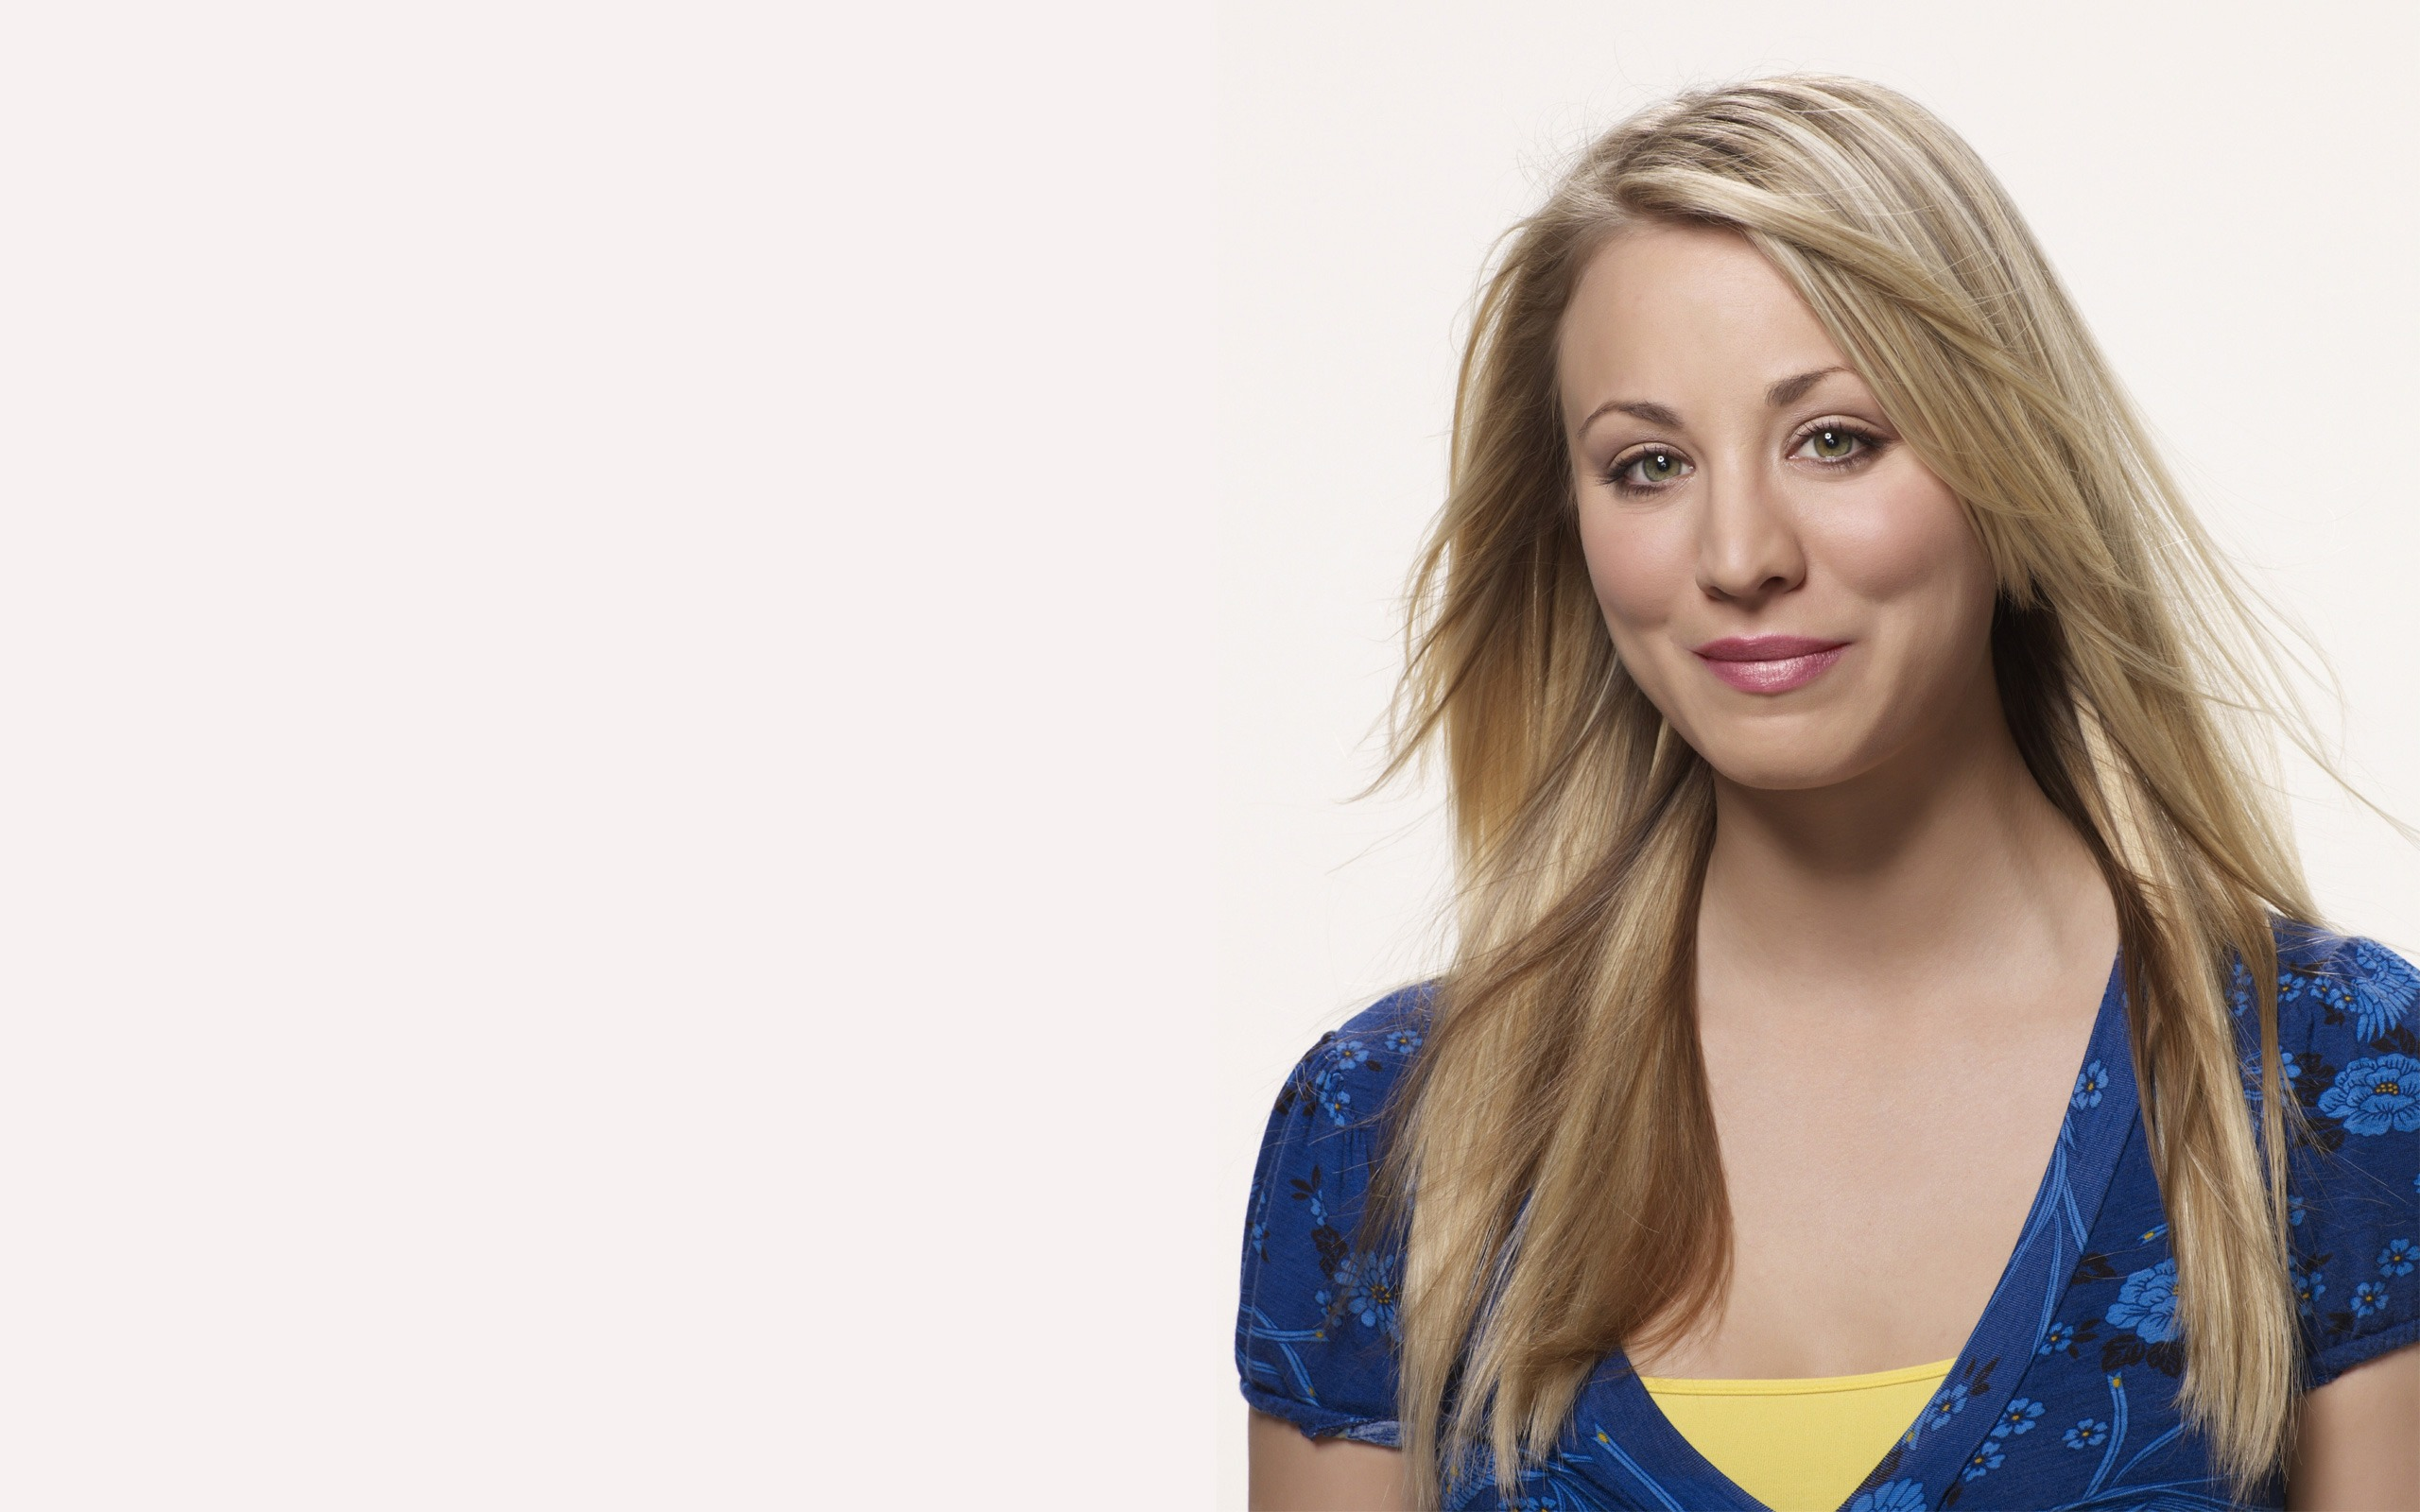 Kaley Cuoco Widescreen Wallpaper   LiLzeu   Tattoo DE 2560x1600